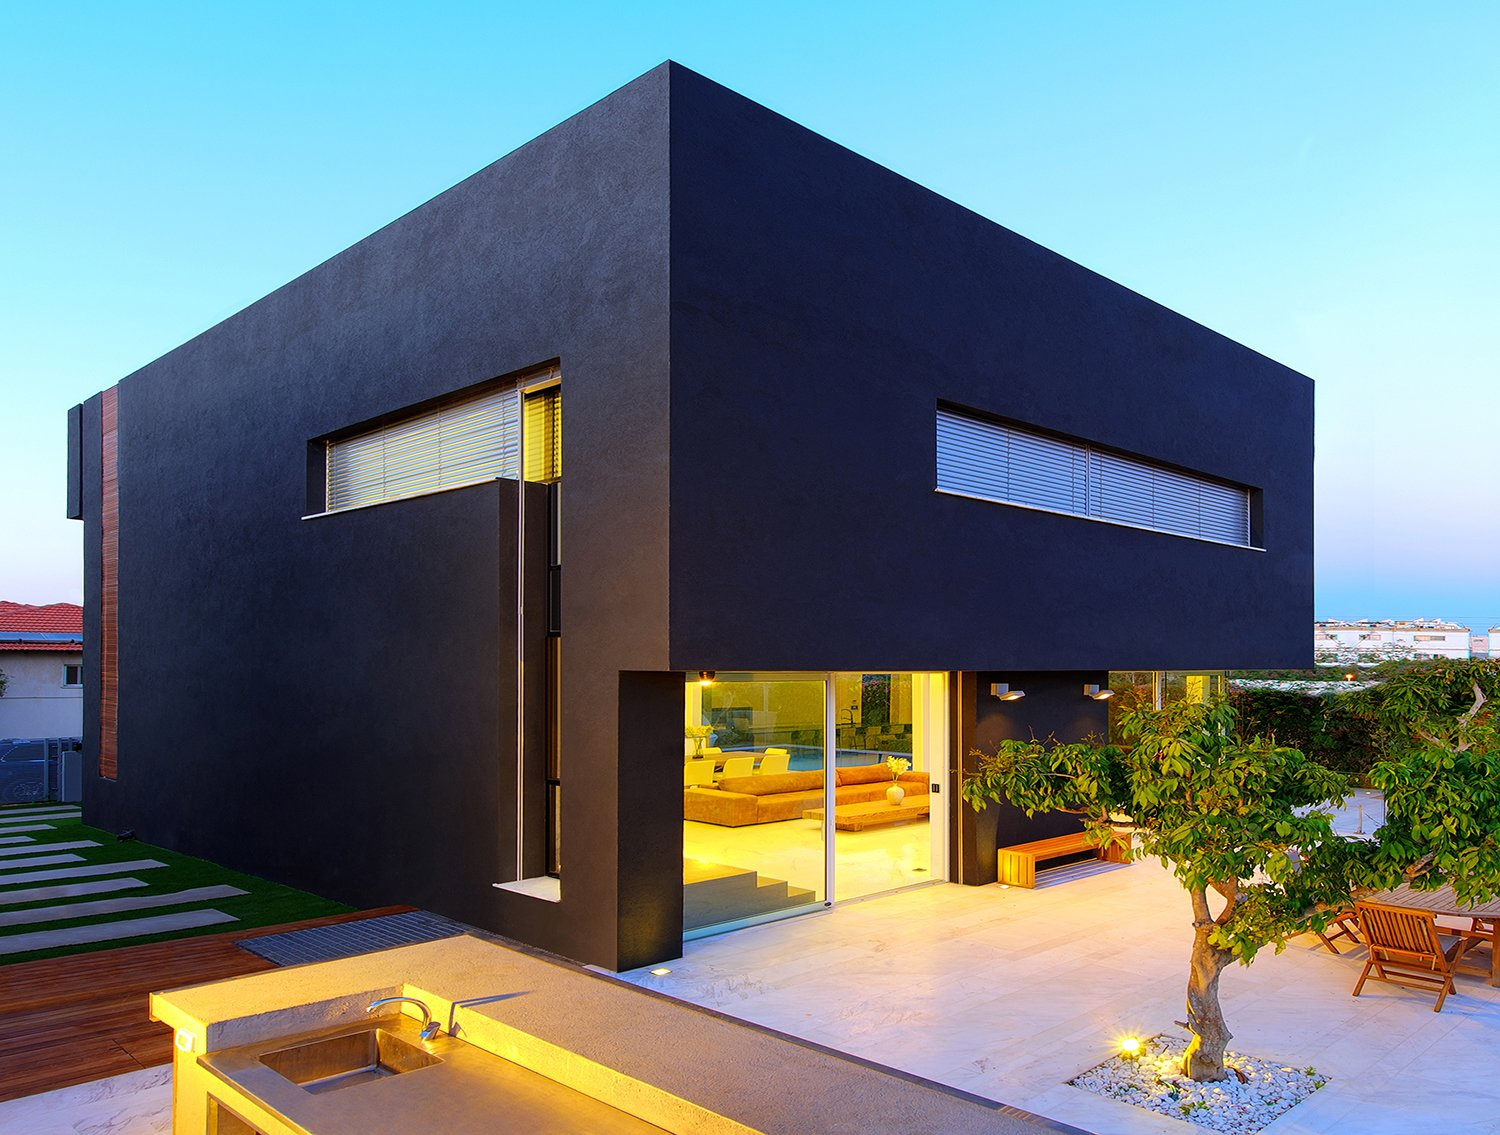 The voluminous black plaster cube appears to float over the open first-floor at the rear elevation. On the roof, solar panels generate about 80 percent of the home's electrical and heating needs. The landscaped backyard was designed to resemble an orchard, and includes several defined areas for socializing and entertaining.  Rishon Le Zion 3 by Sarah Akkoush